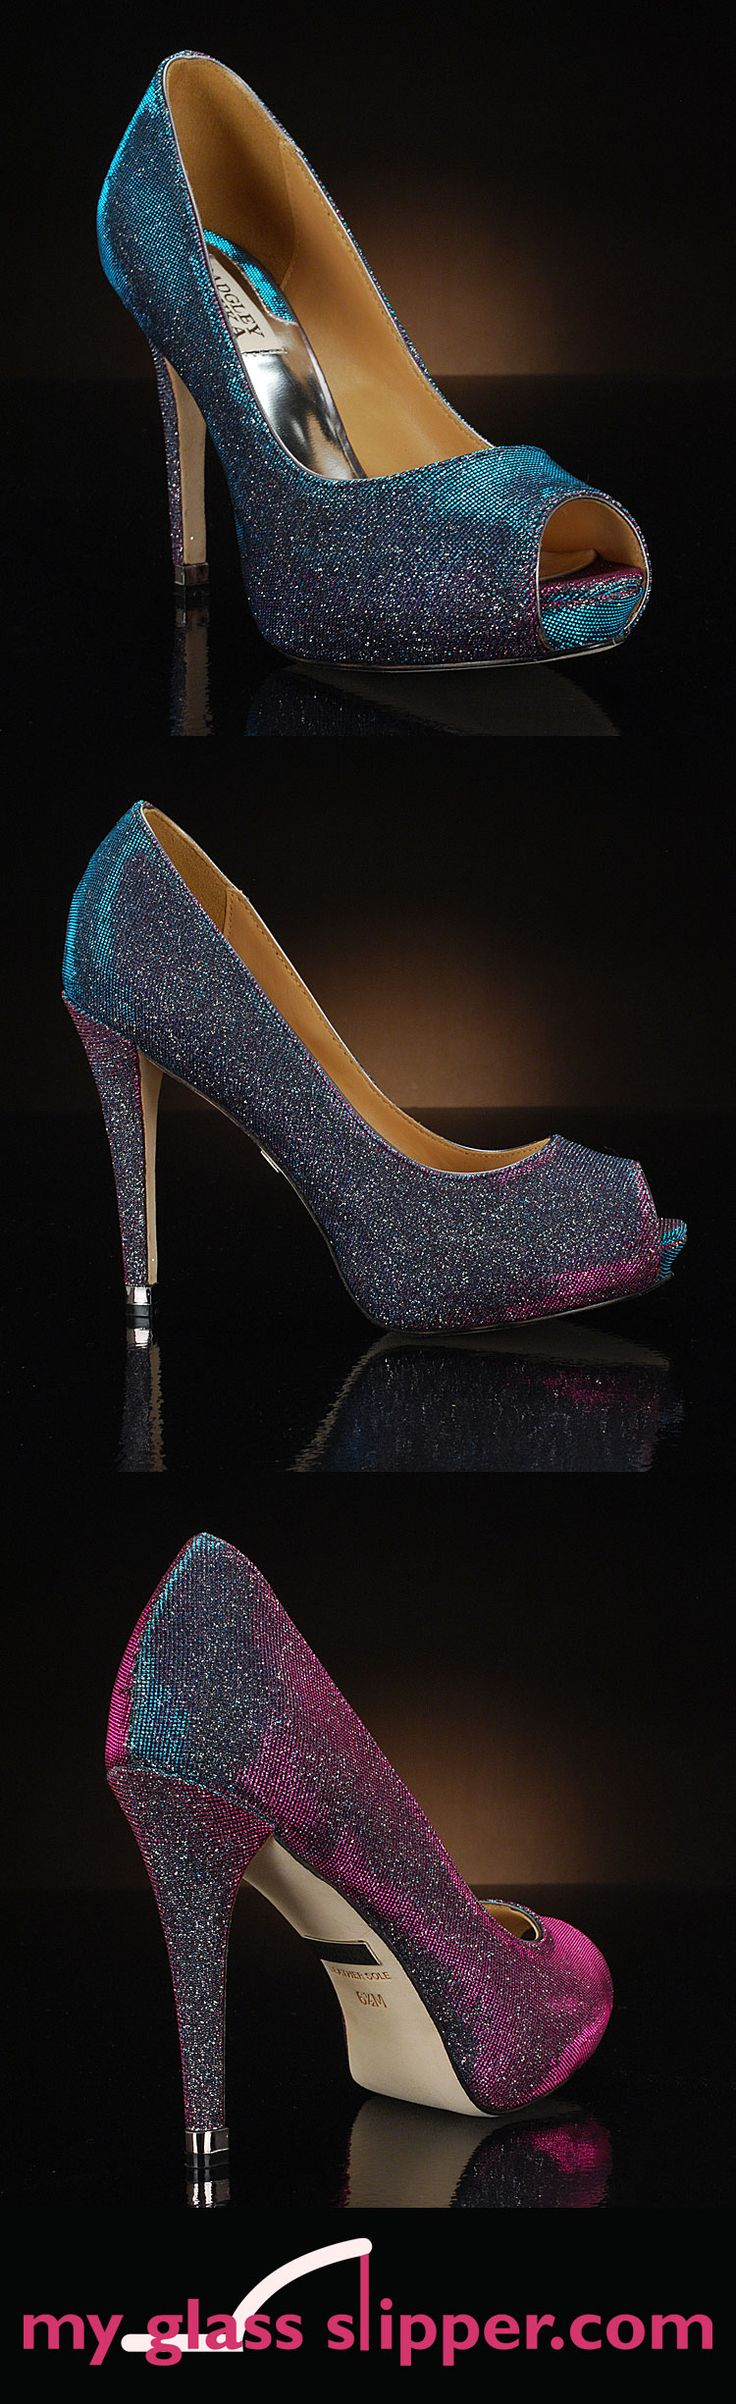 HUMBIE IV in GREY PLUM by BADGLEY MISCHKA: The bestselling Humbie wedding shoes get a chic, fashion-forward update in this grey-plum shimmer that evokes the popular peacock wedding colors. Iridescent shimmer of teal, purple, blue and green is irresistible!